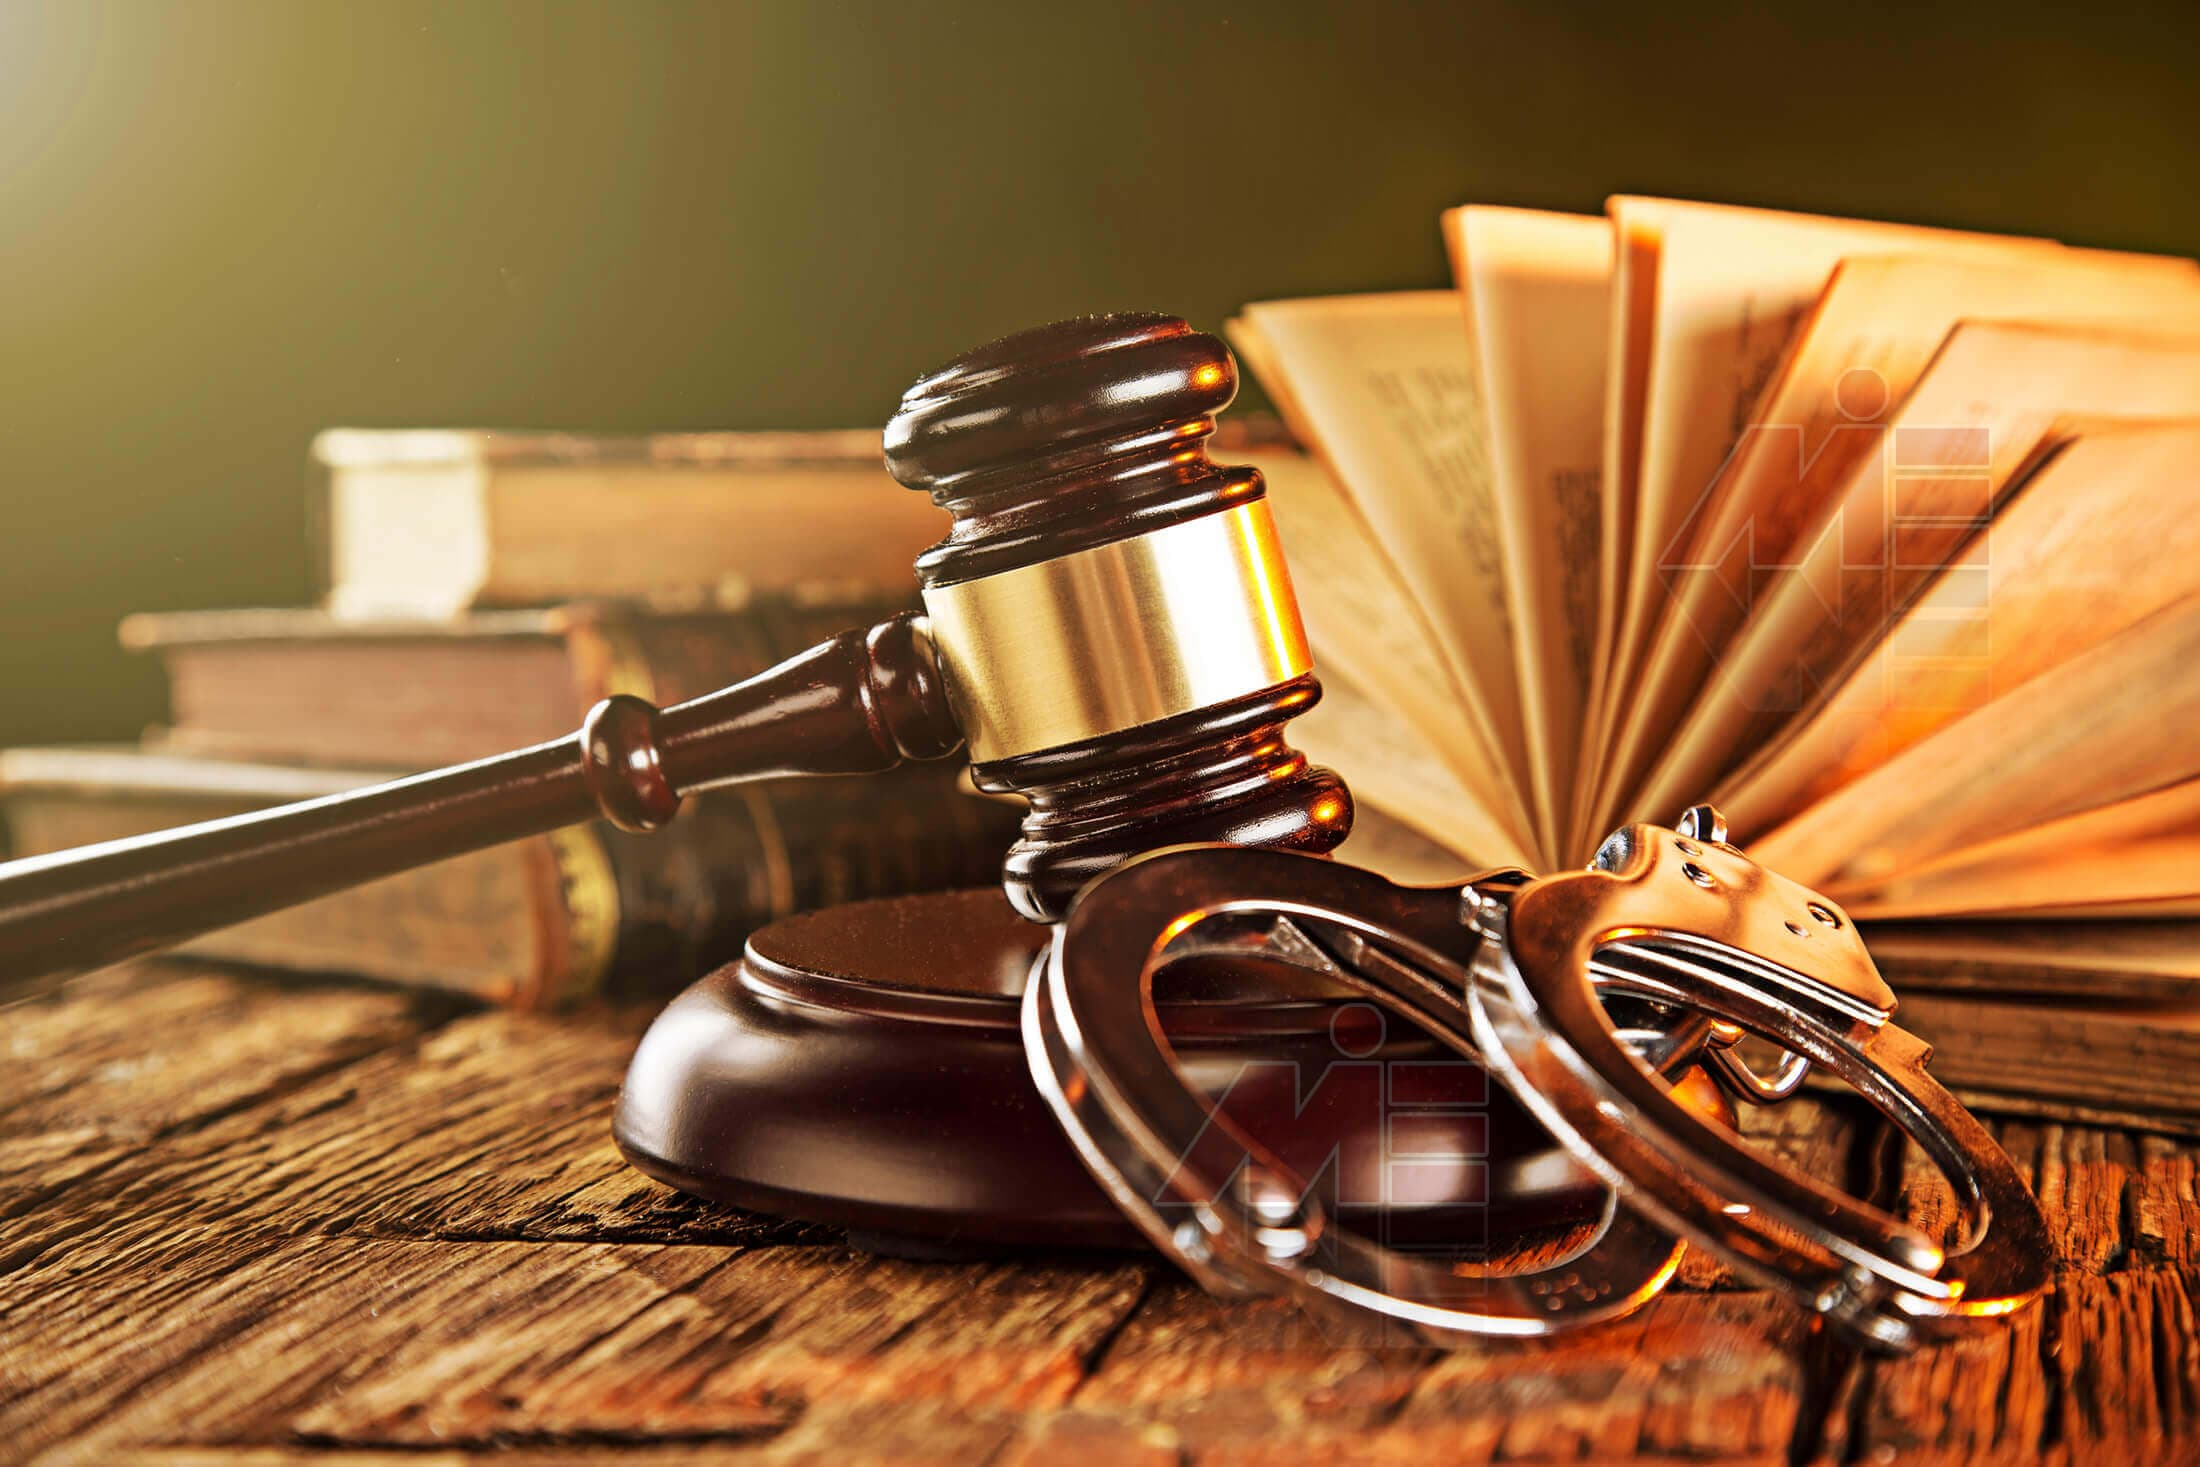 chicago criminal defense lawyers gilmartin legal cook county وکیل مهاجرت کانادا با مشاور مهاجرت کانادا